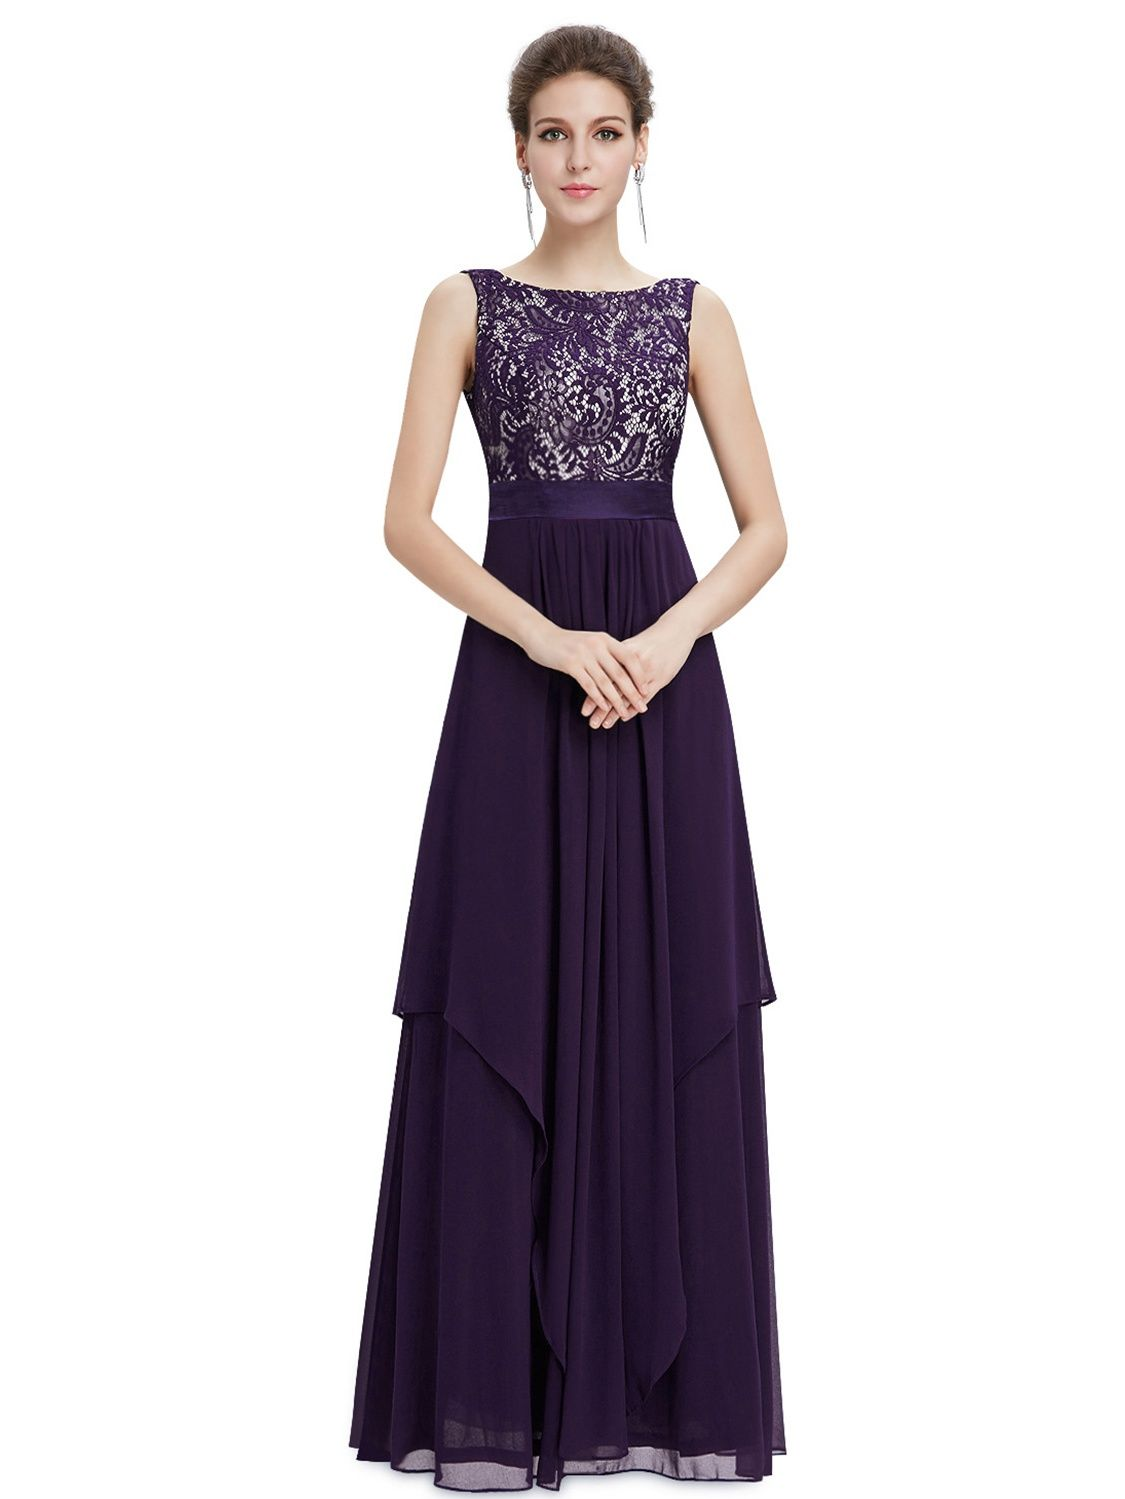 b309345ca07 Ever-Pretty Women s Elegant Flowy O-Neck Chiffon Summer Prom Party Military  Ball Gown Formal Dresses for Women 08217 Purple US 14 Chiffon